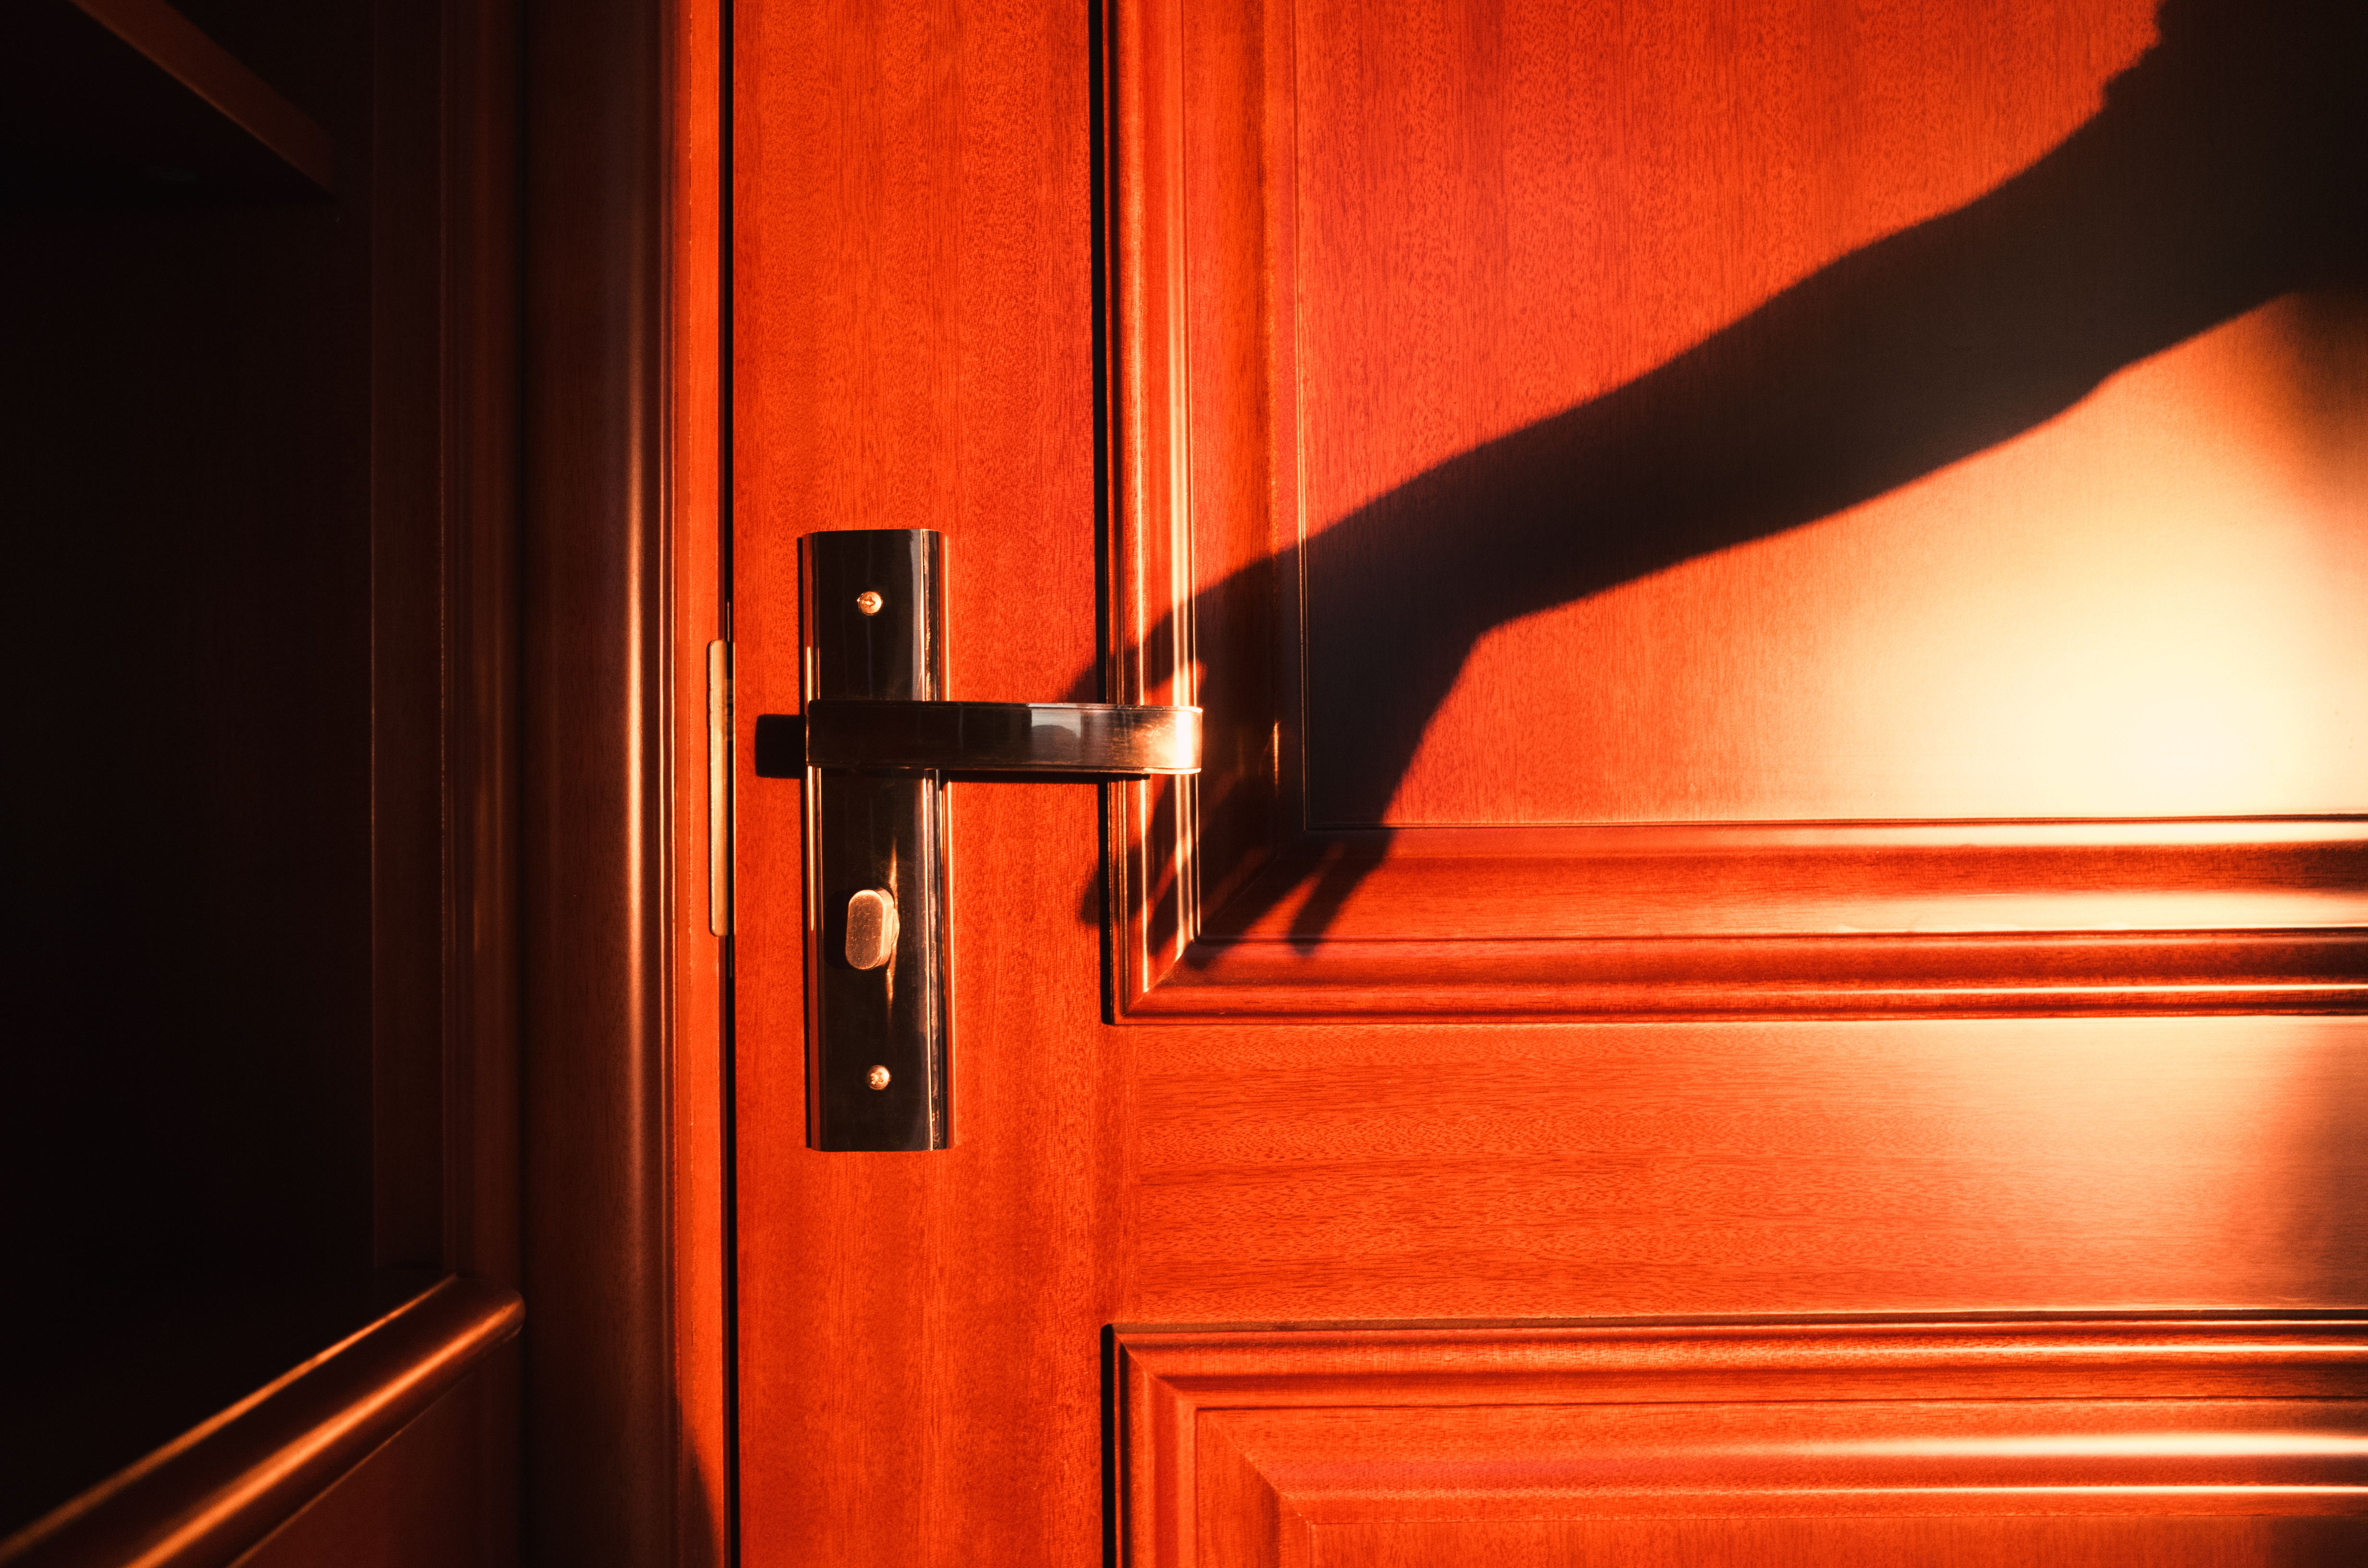 Door-knocking is not a scary way to expand your sphere of influence as an agent.